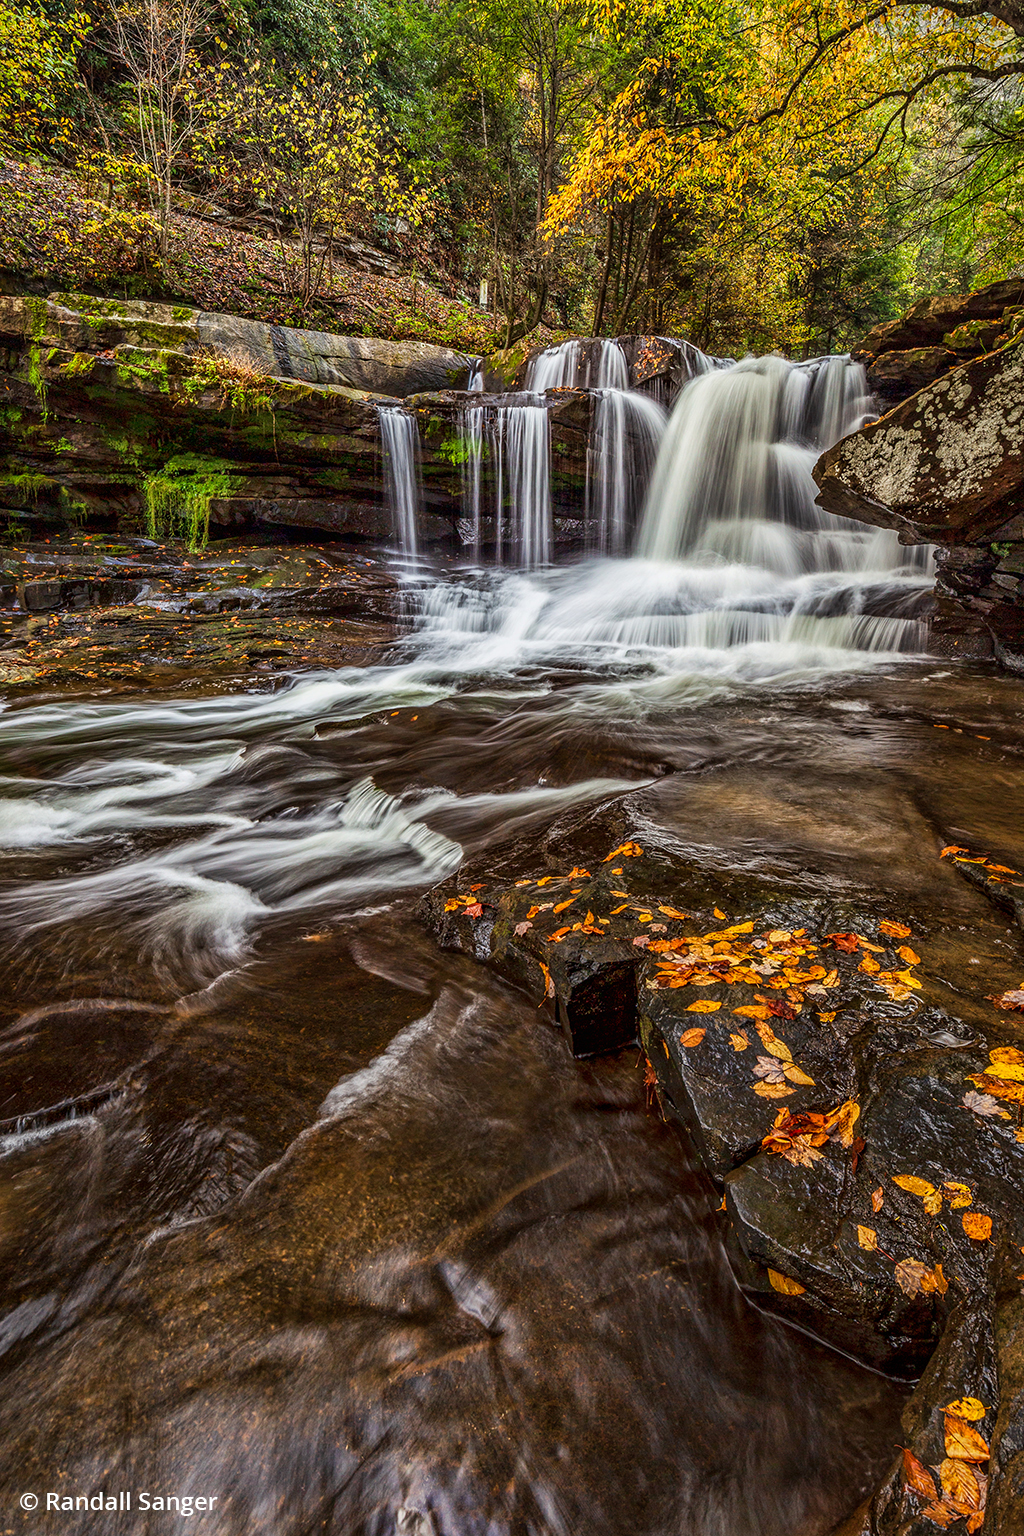 Image of Dunloup Creek Falls in New River Gorge